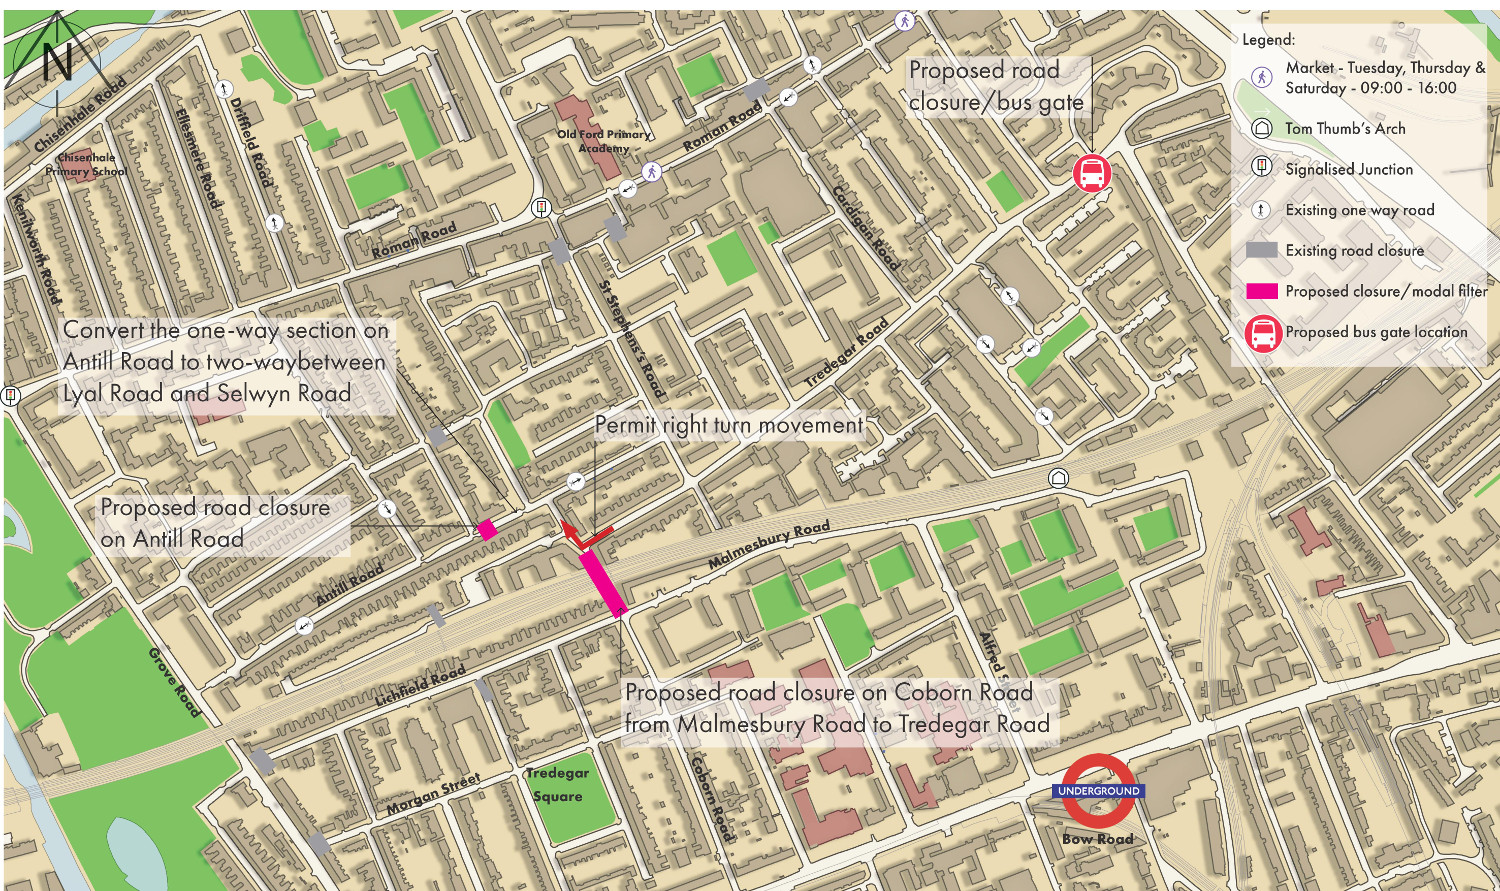 Key Bow roads to close for 8-day Liveable Streets trial | Roman Road LDN